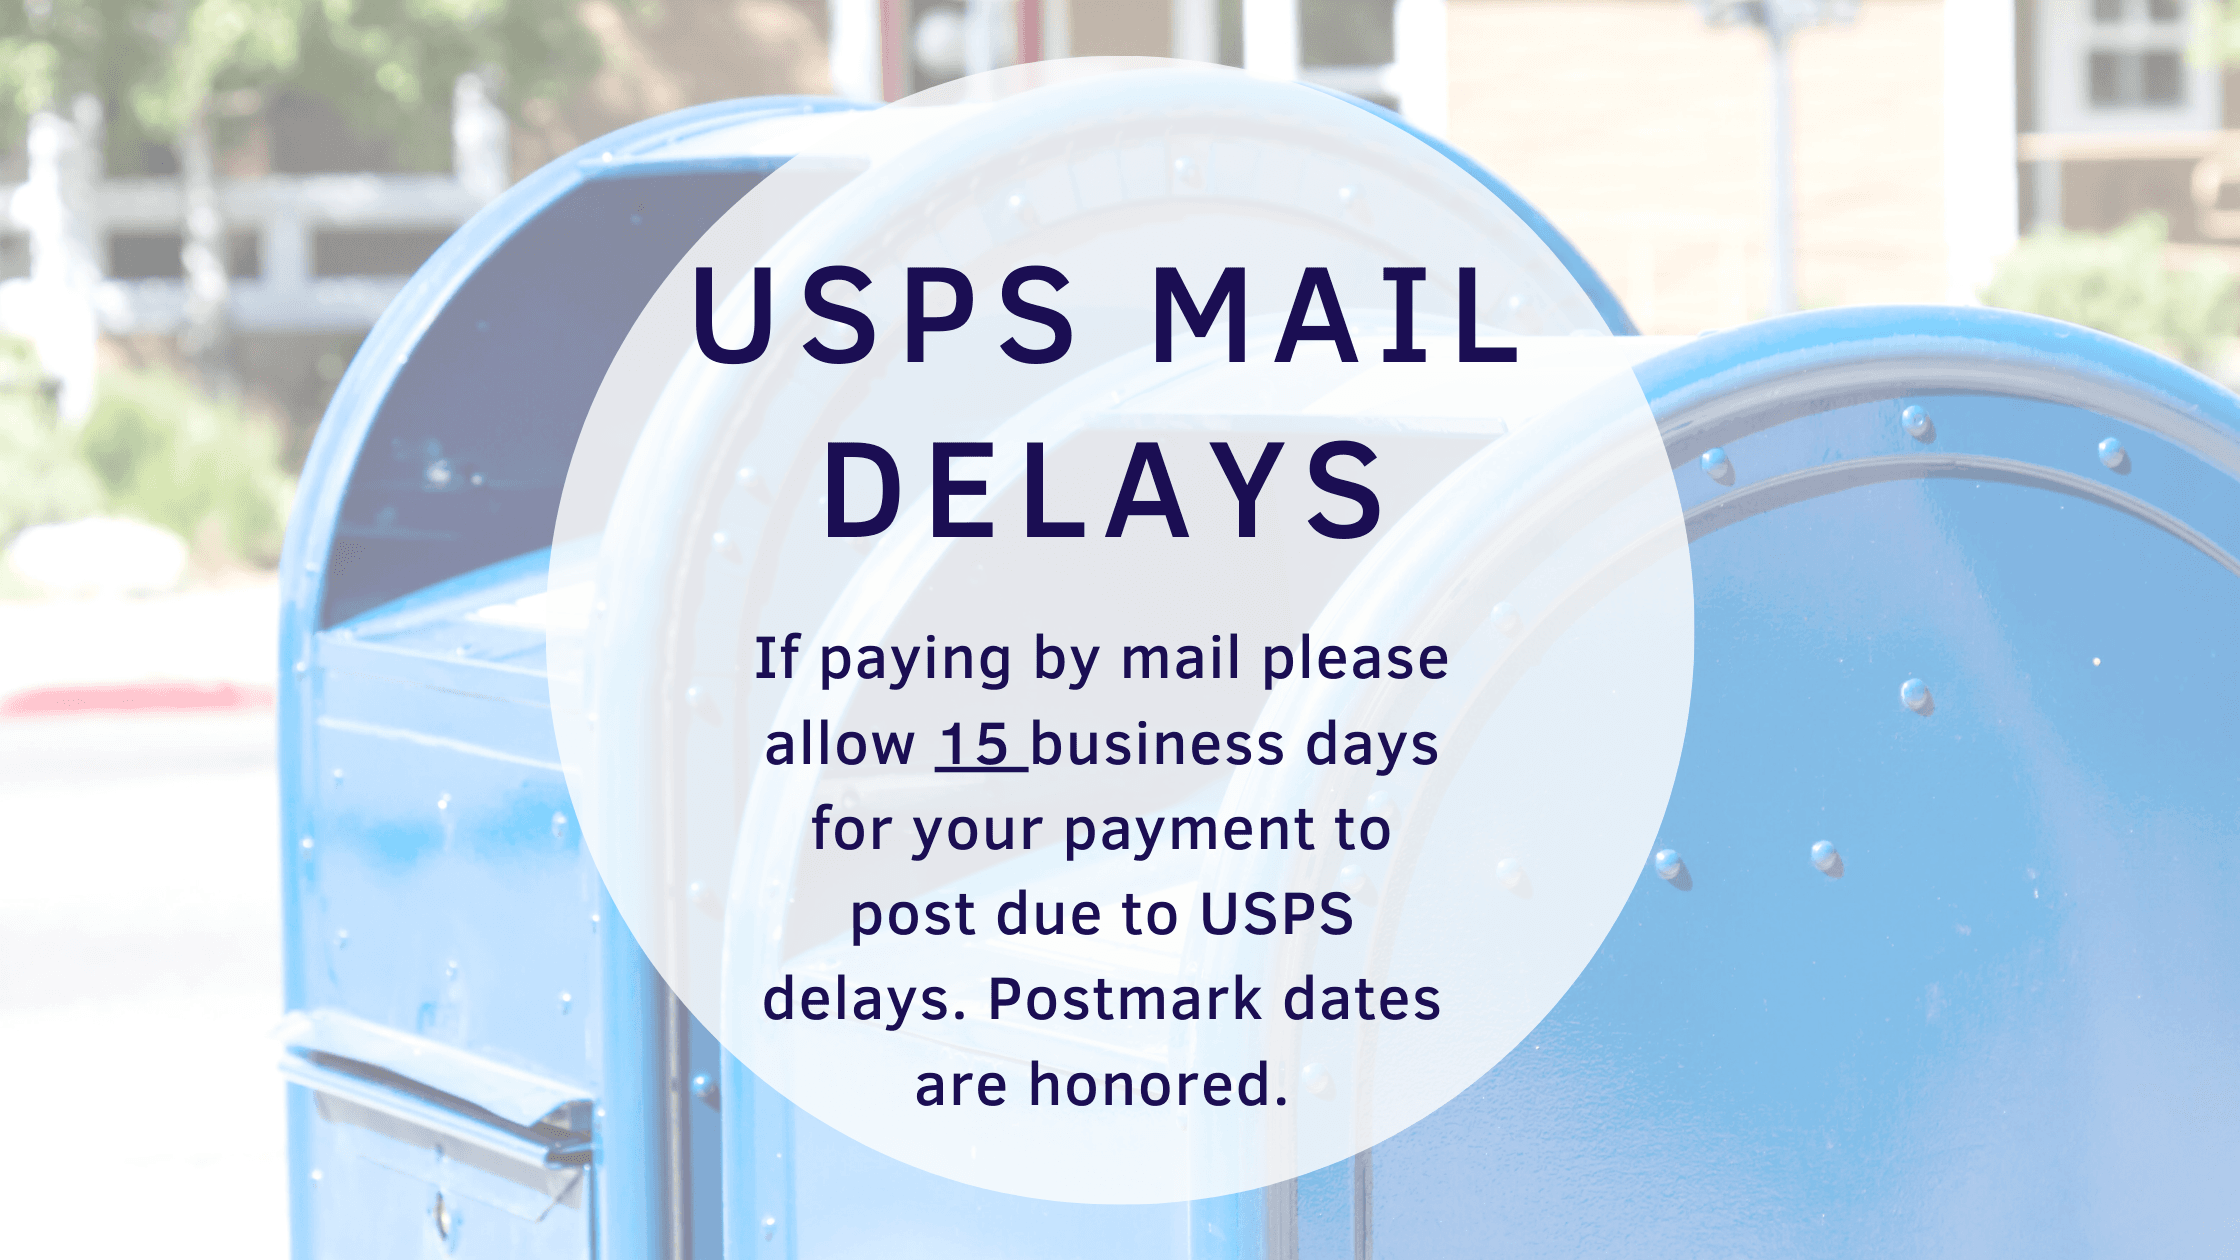 USPS Mail Delays